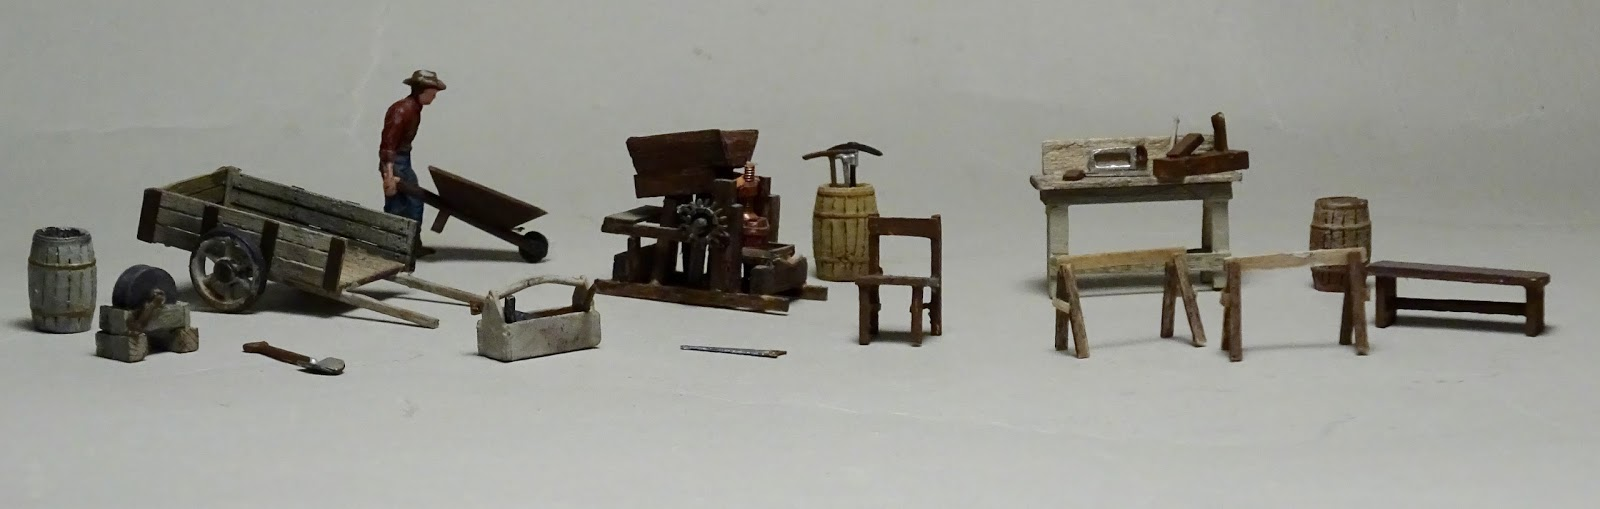 small resolution of  scratch built as are the chair bench work bench saw horses and the strange machine in the center that machine is being repaired by the carpenter